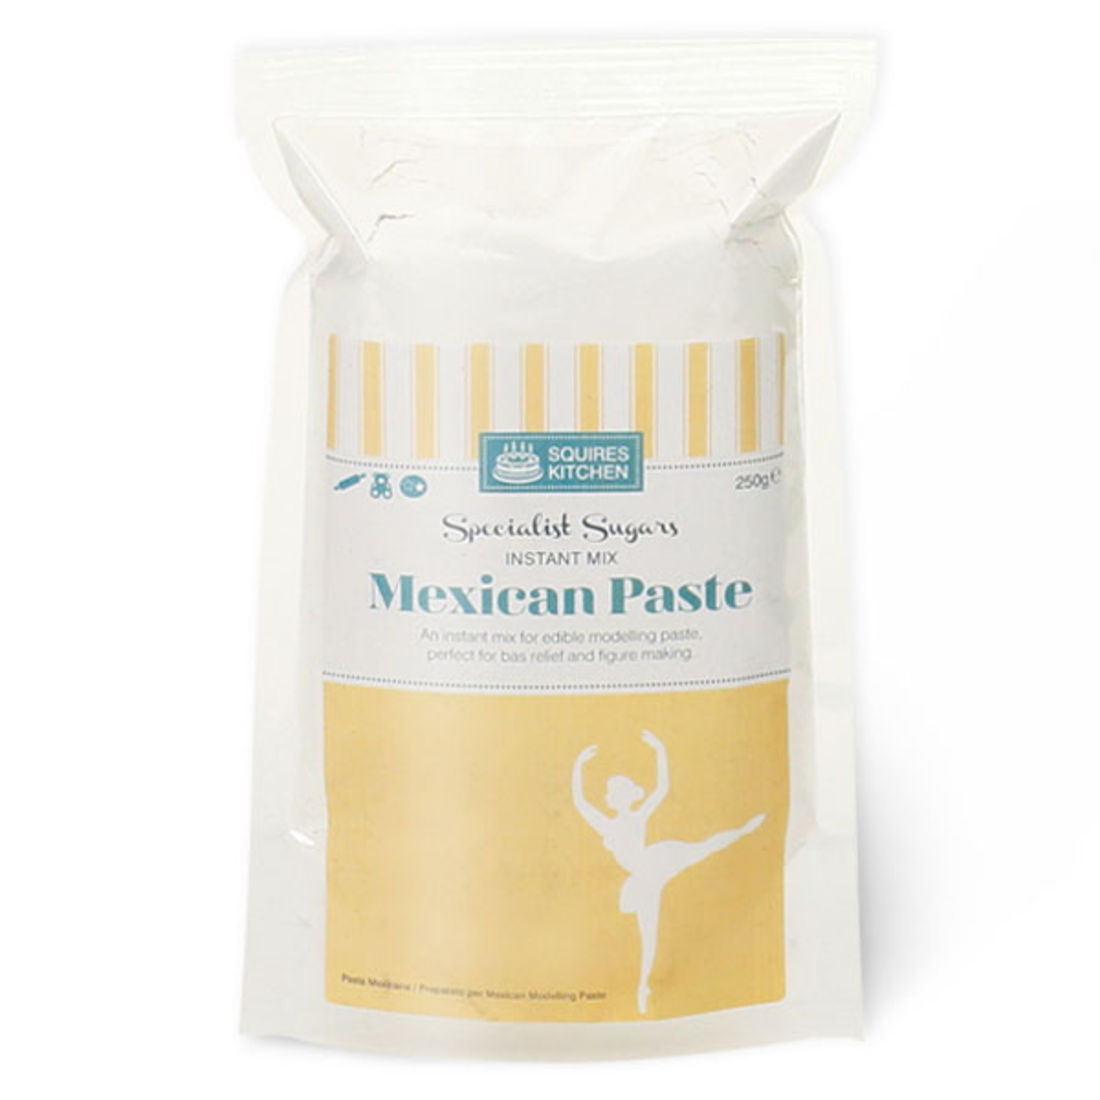 30859 SK Specialist Sugar Instant Mixes Mexican Paste 250g